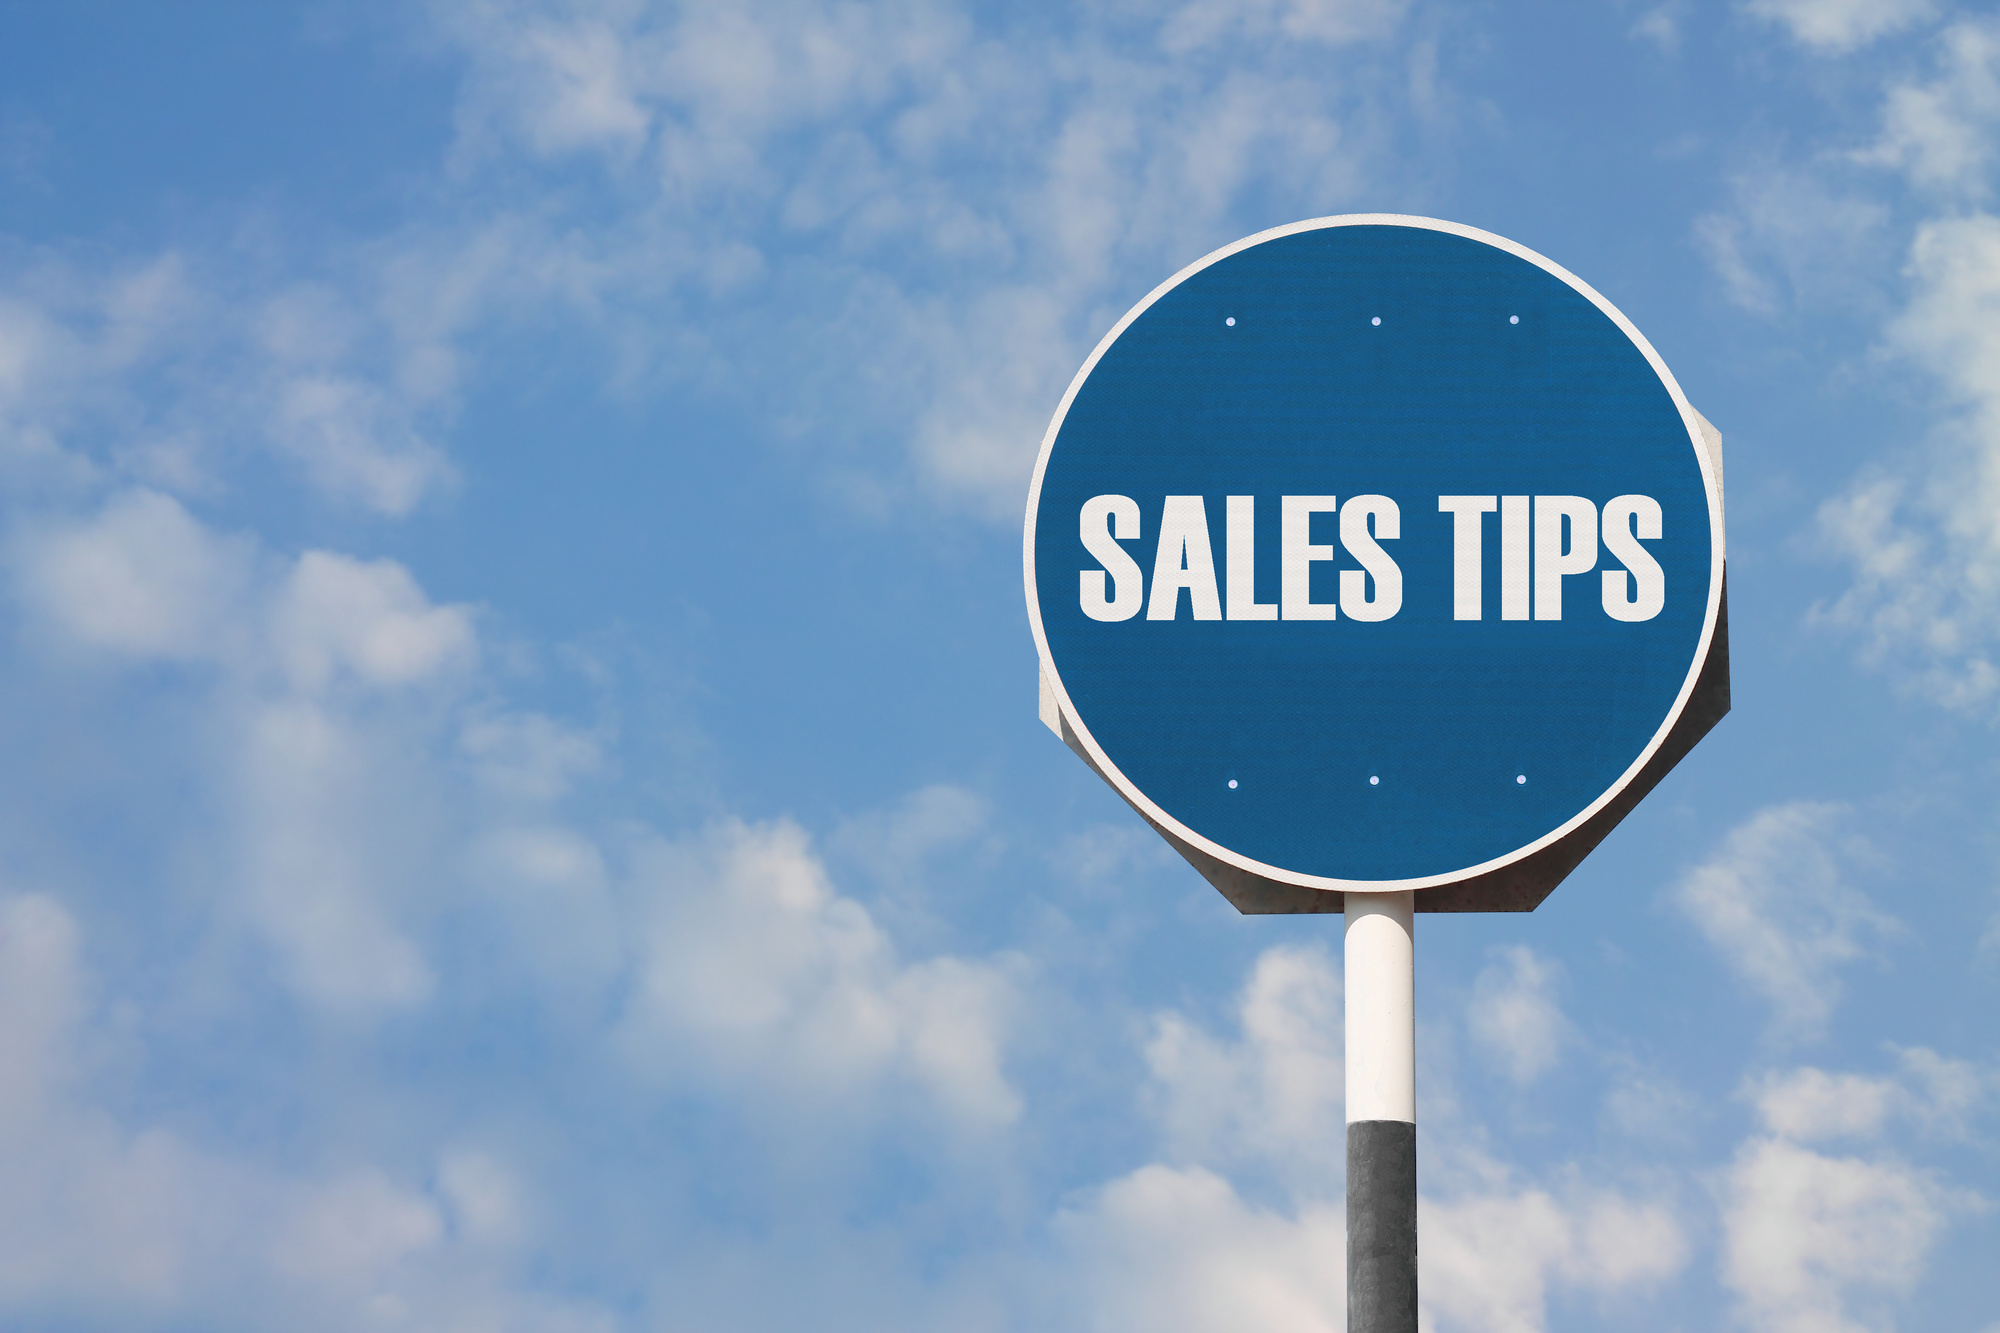 7 Proven Sales Tips That Will Skyrocket Your Sales